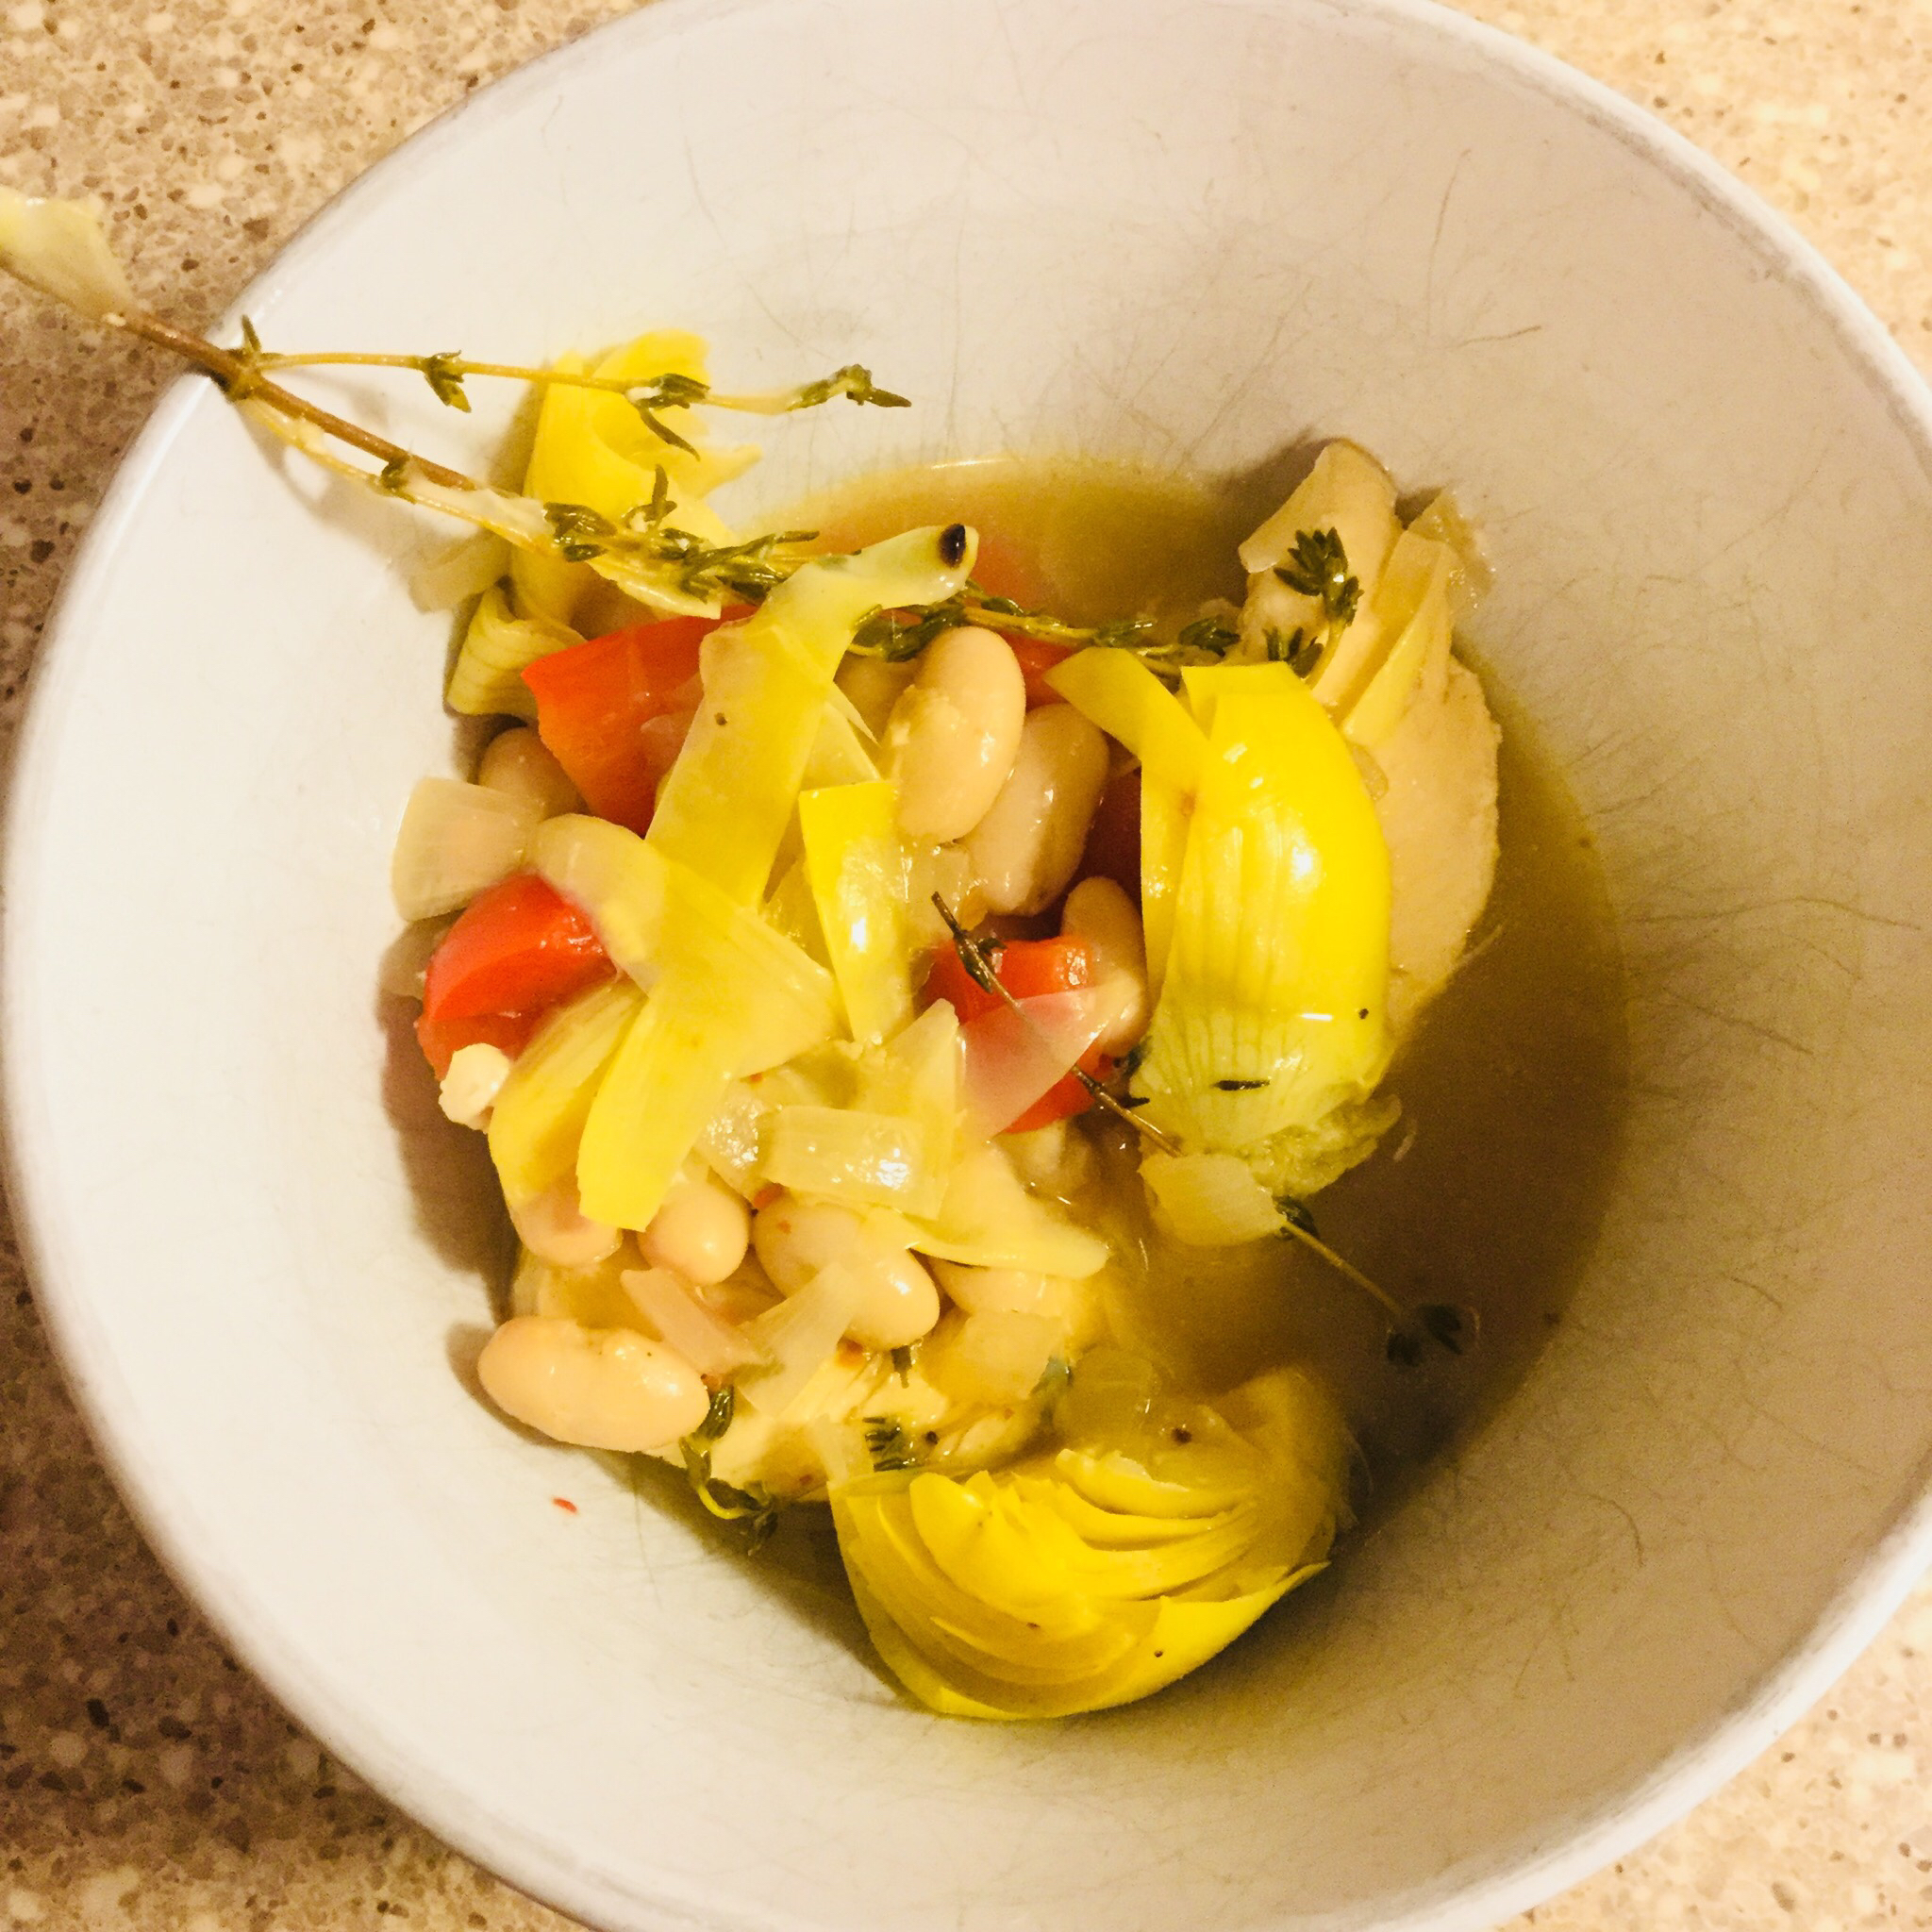 Braised Chicken and Artichoke Hearts with Lemon, Cherry Peppers and Thyme